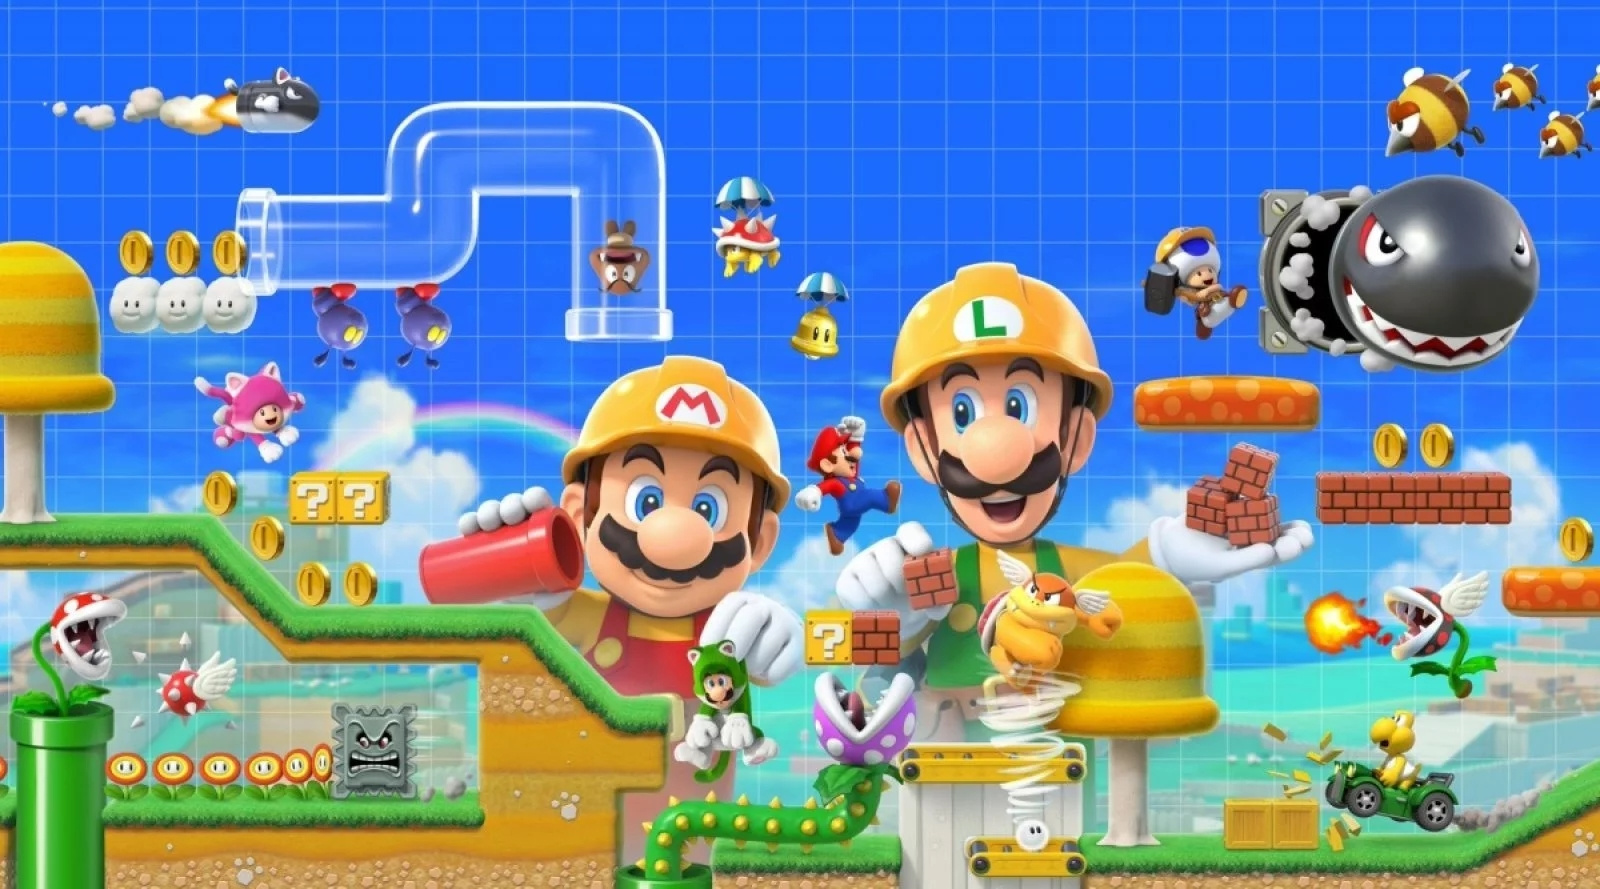 There Are Now More Than 5 Million Courses In Super Mario Maker 2